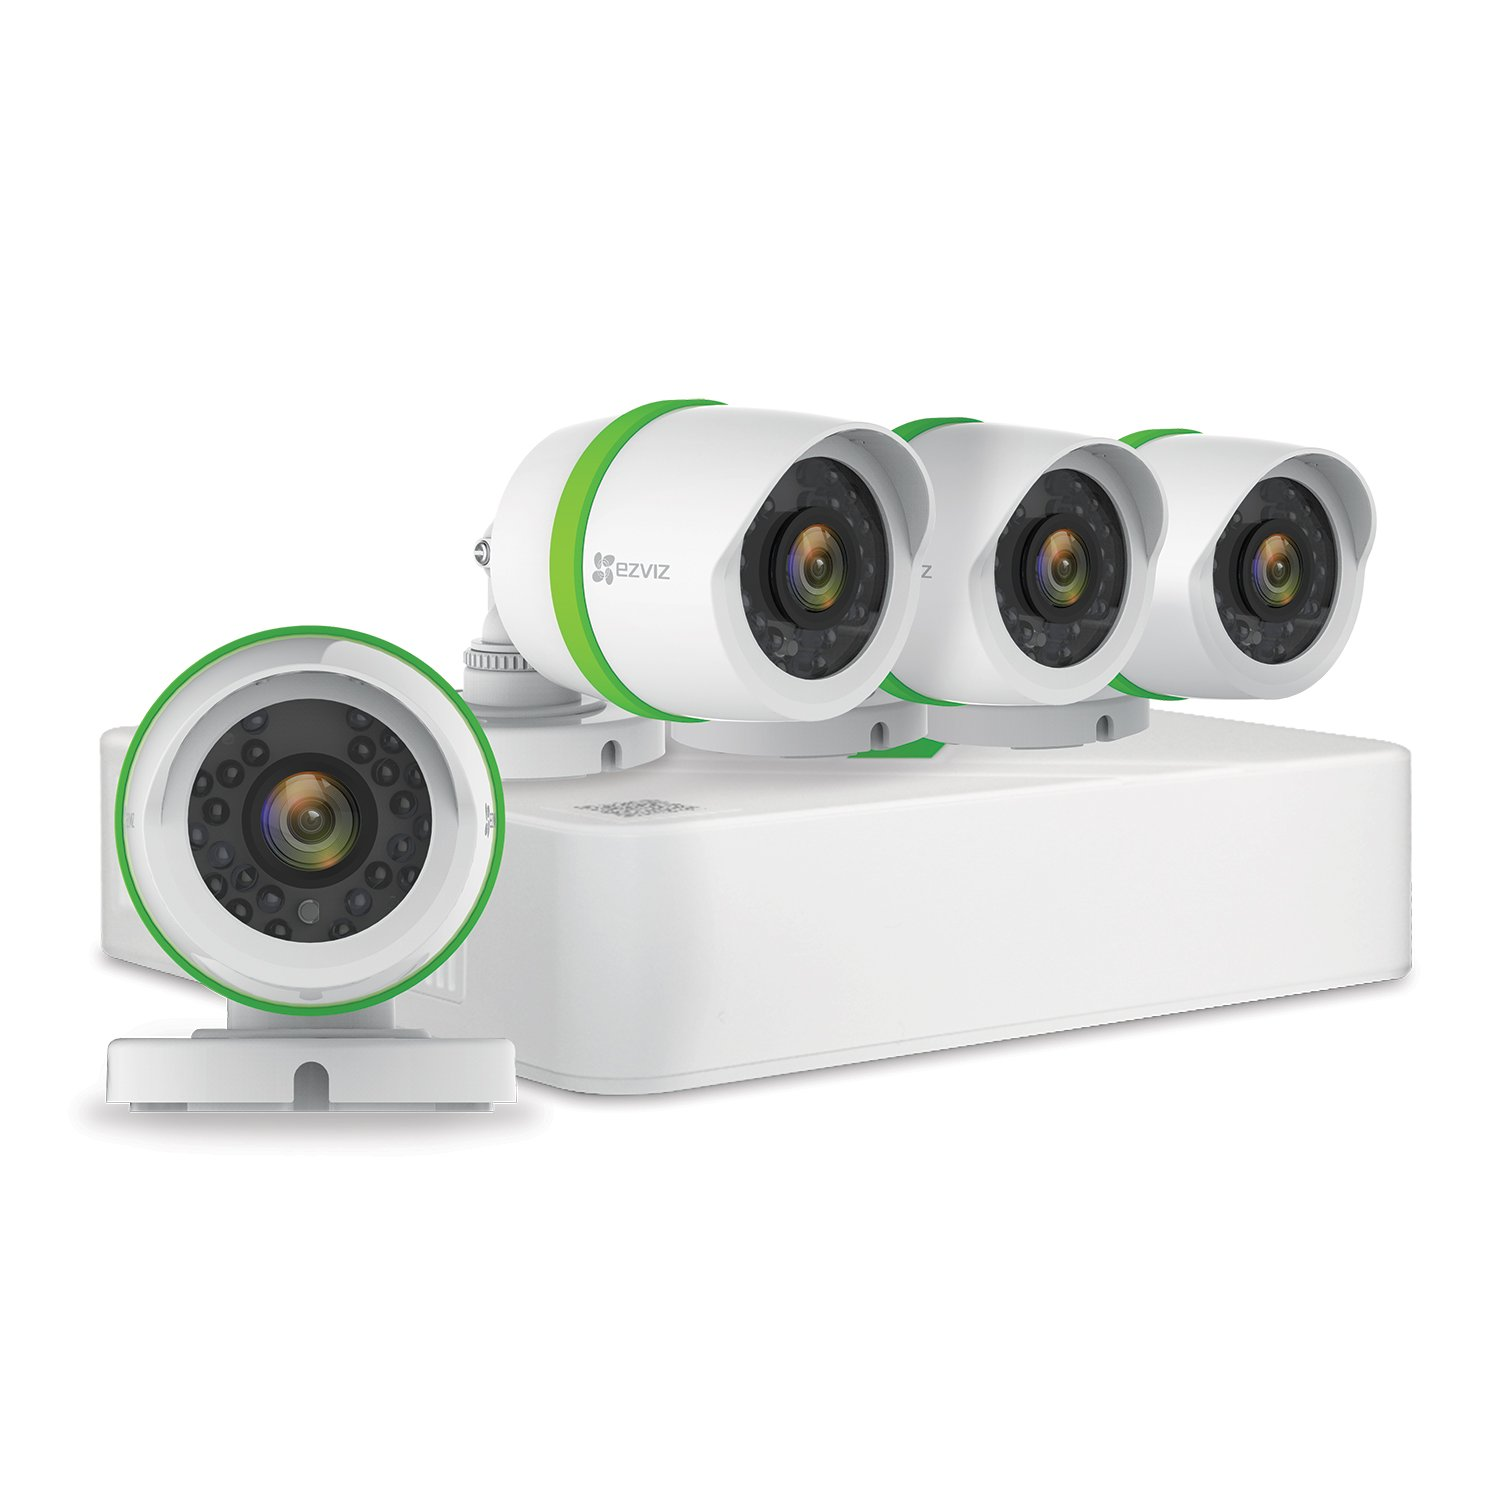 Best surveillance cameras for home - EZVIZ Smart Home Security Camera System